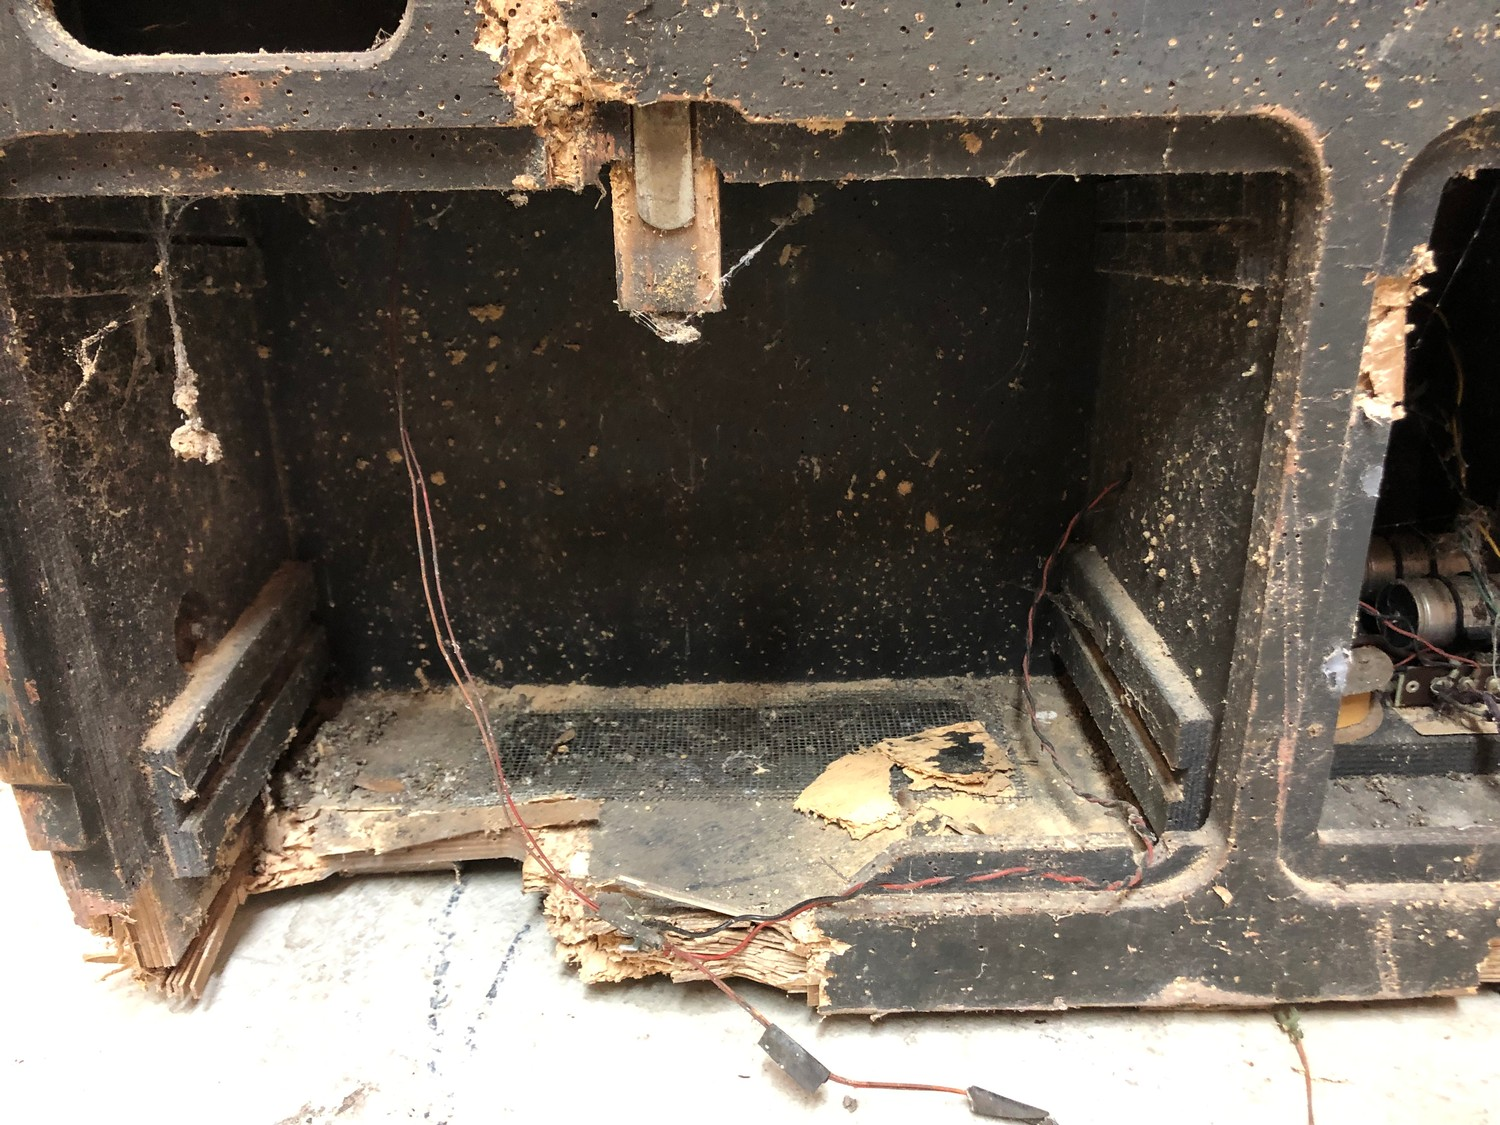 """Rare 1950s Bal-AMi 200 Jukebox in """"Barn Find"""" condition and in need of complete restoration, - Image 8 of 27"""